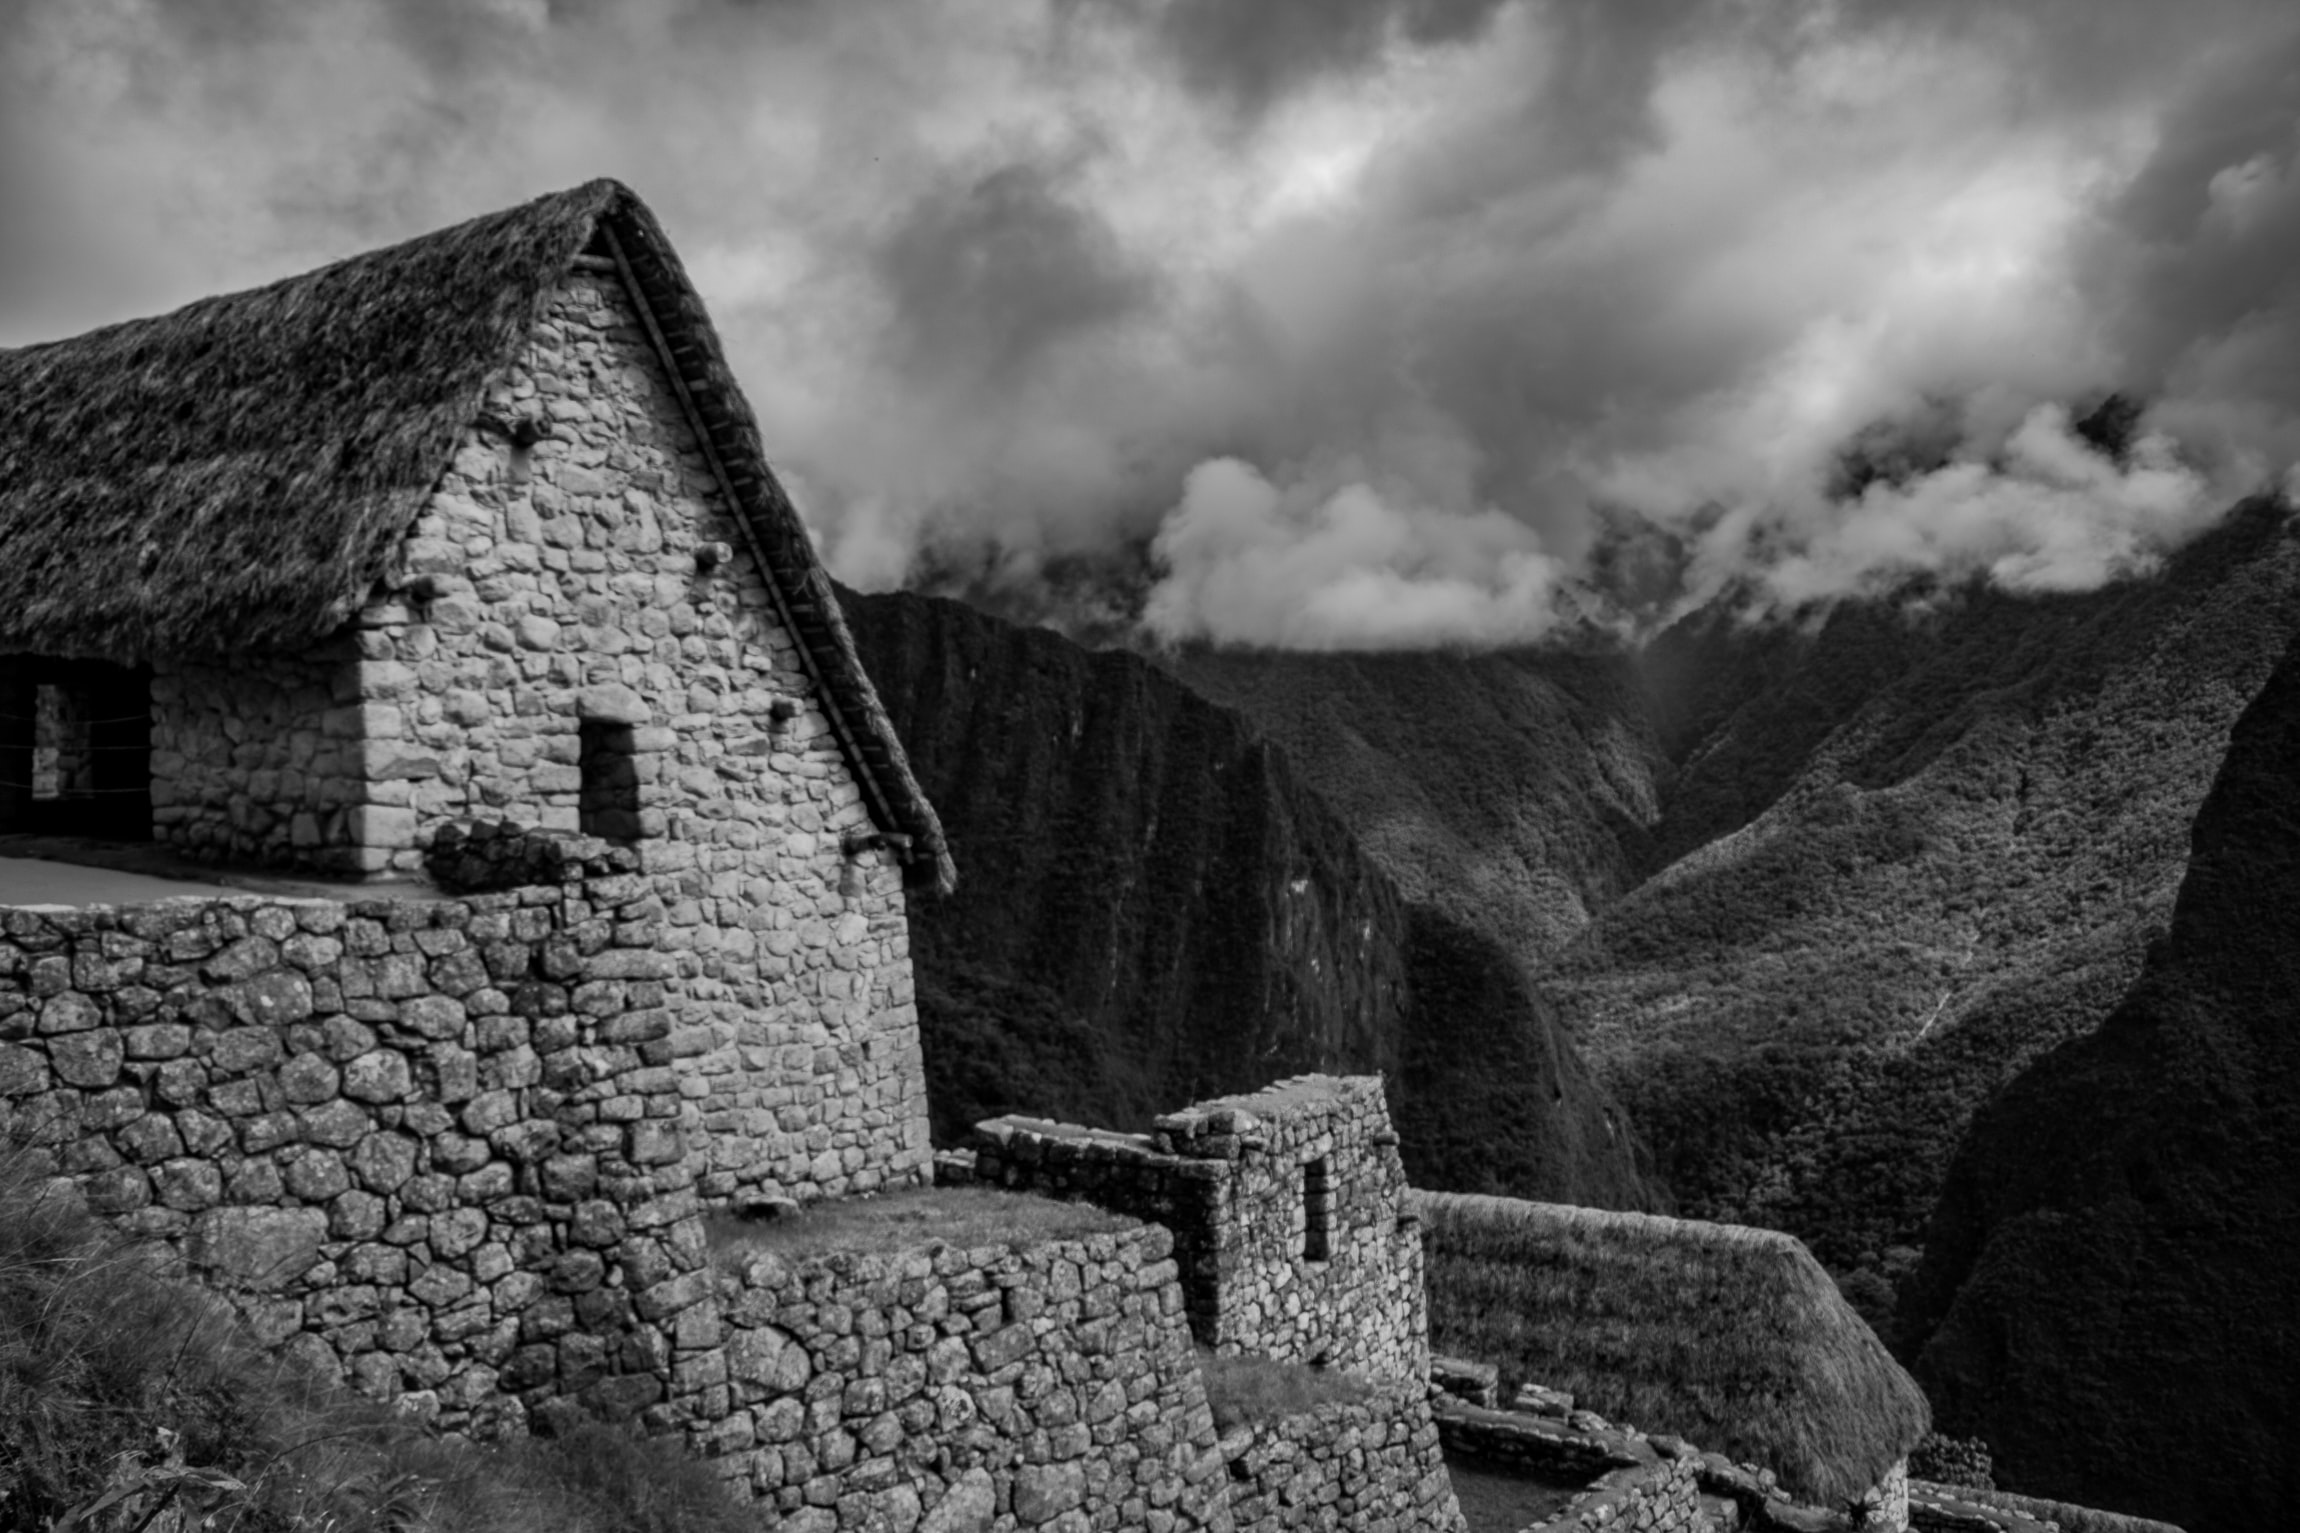 grayscale photography of house near mountain under the cloudy sky